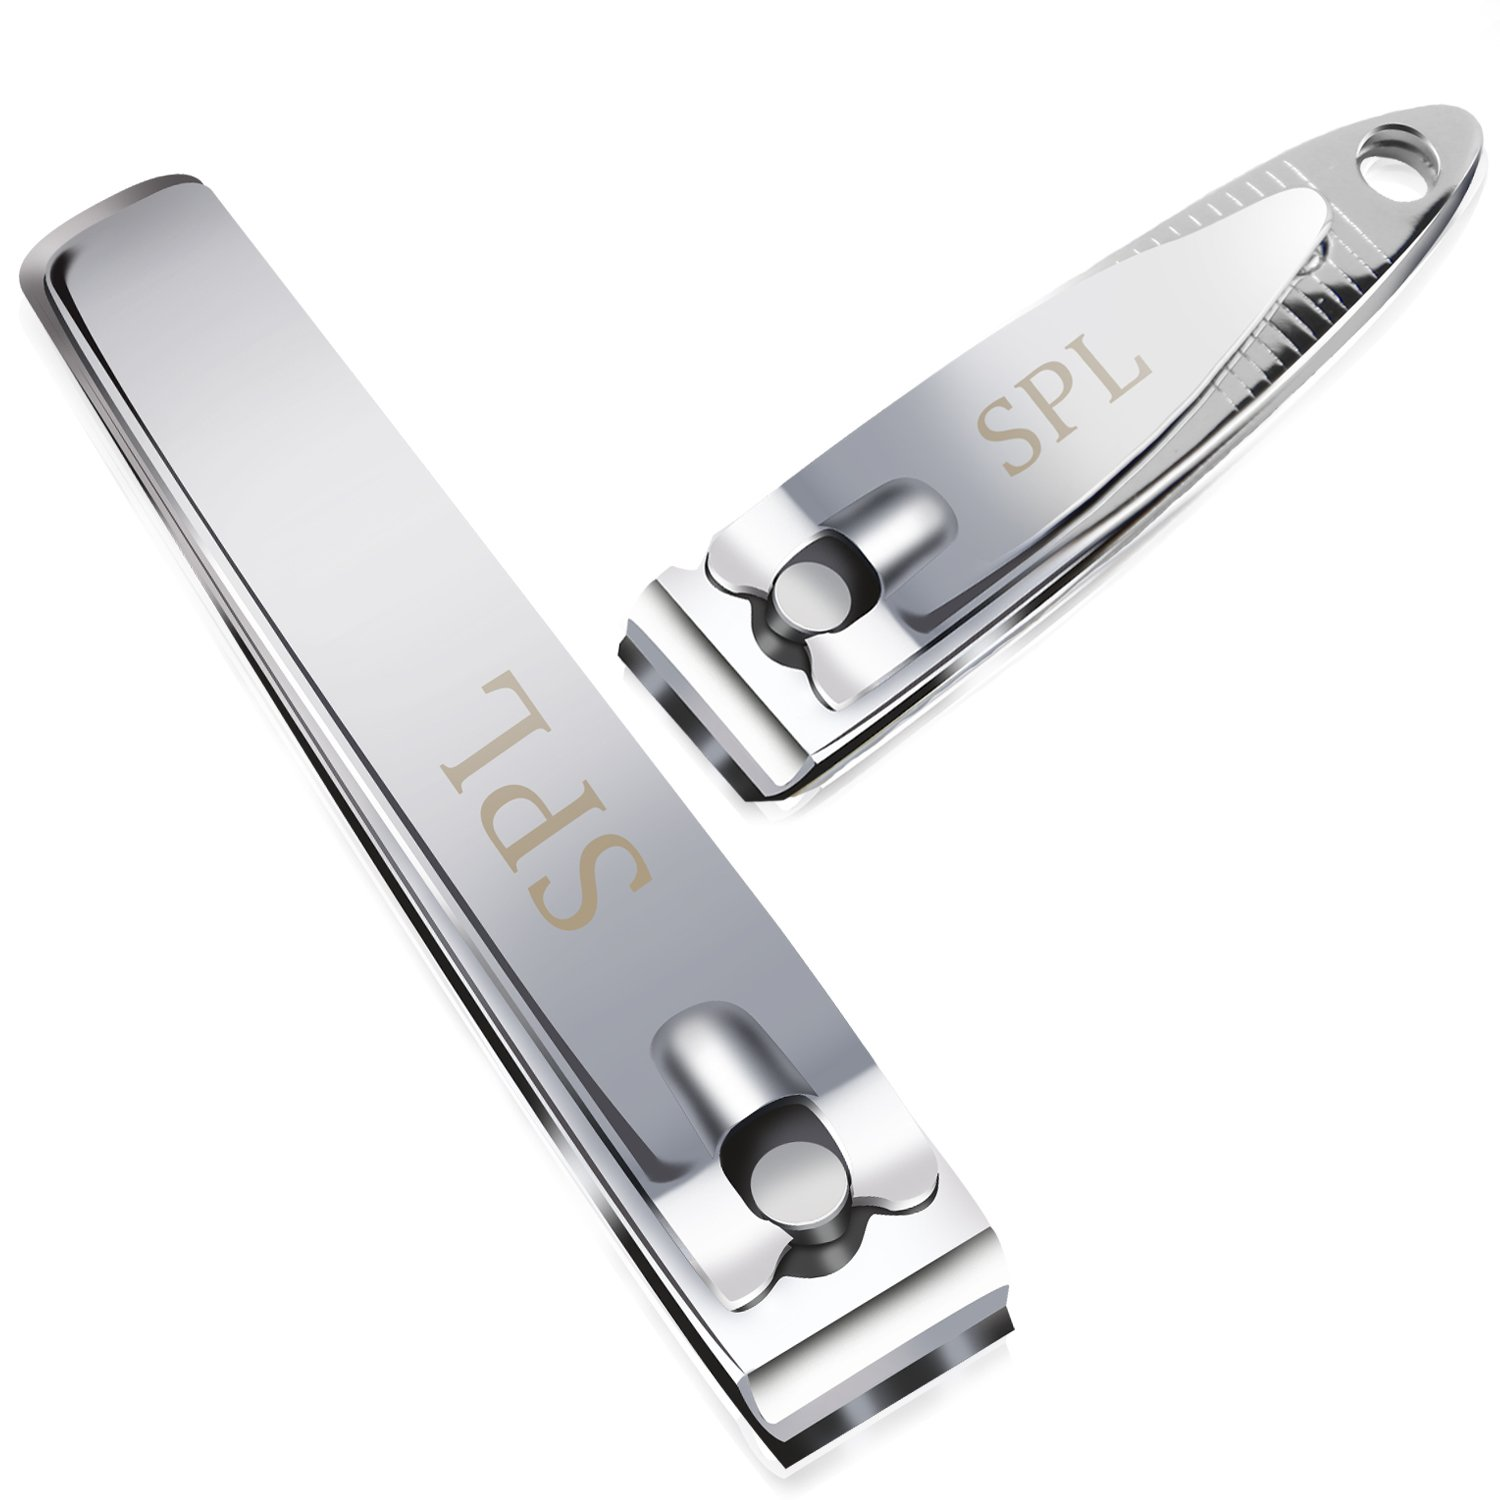 SPL Professional Fingernail and Toenail Clippers, Manicure and Pedicure tool, Set of 2 pcs (Small Large) Surgical Stainless Steel Cutter for Men and Women